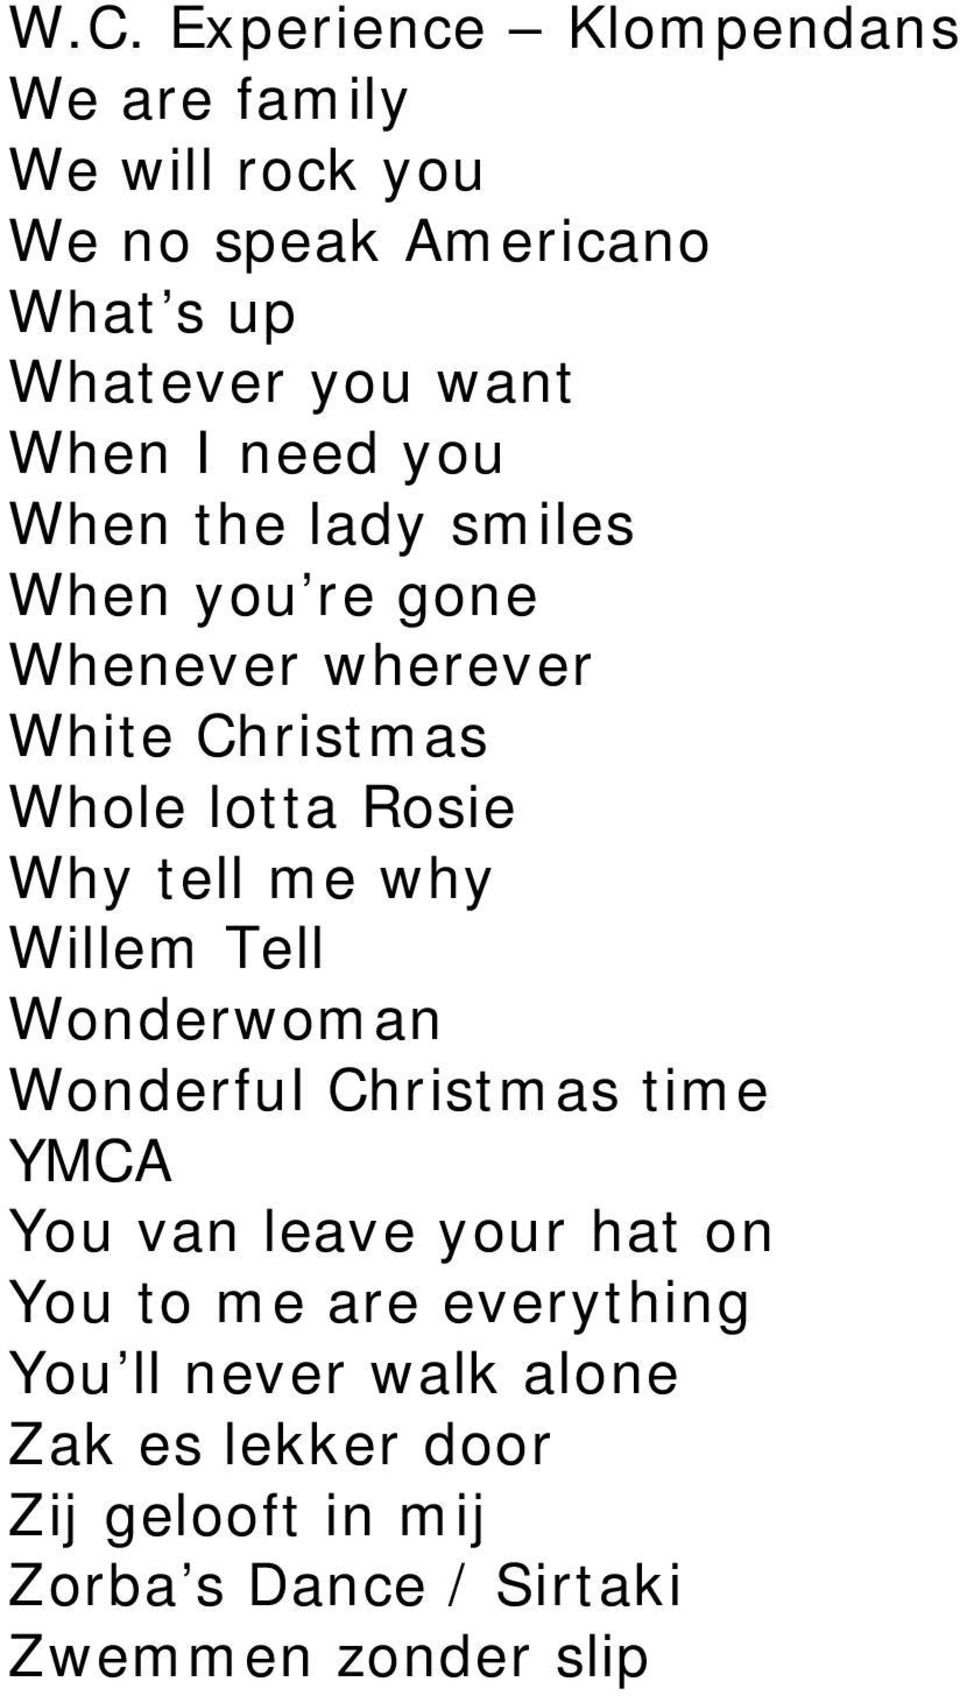 tell me why Willem Tell Wonderwoman Wonderful Christmas time YMCA You van leave your hat on You to me are